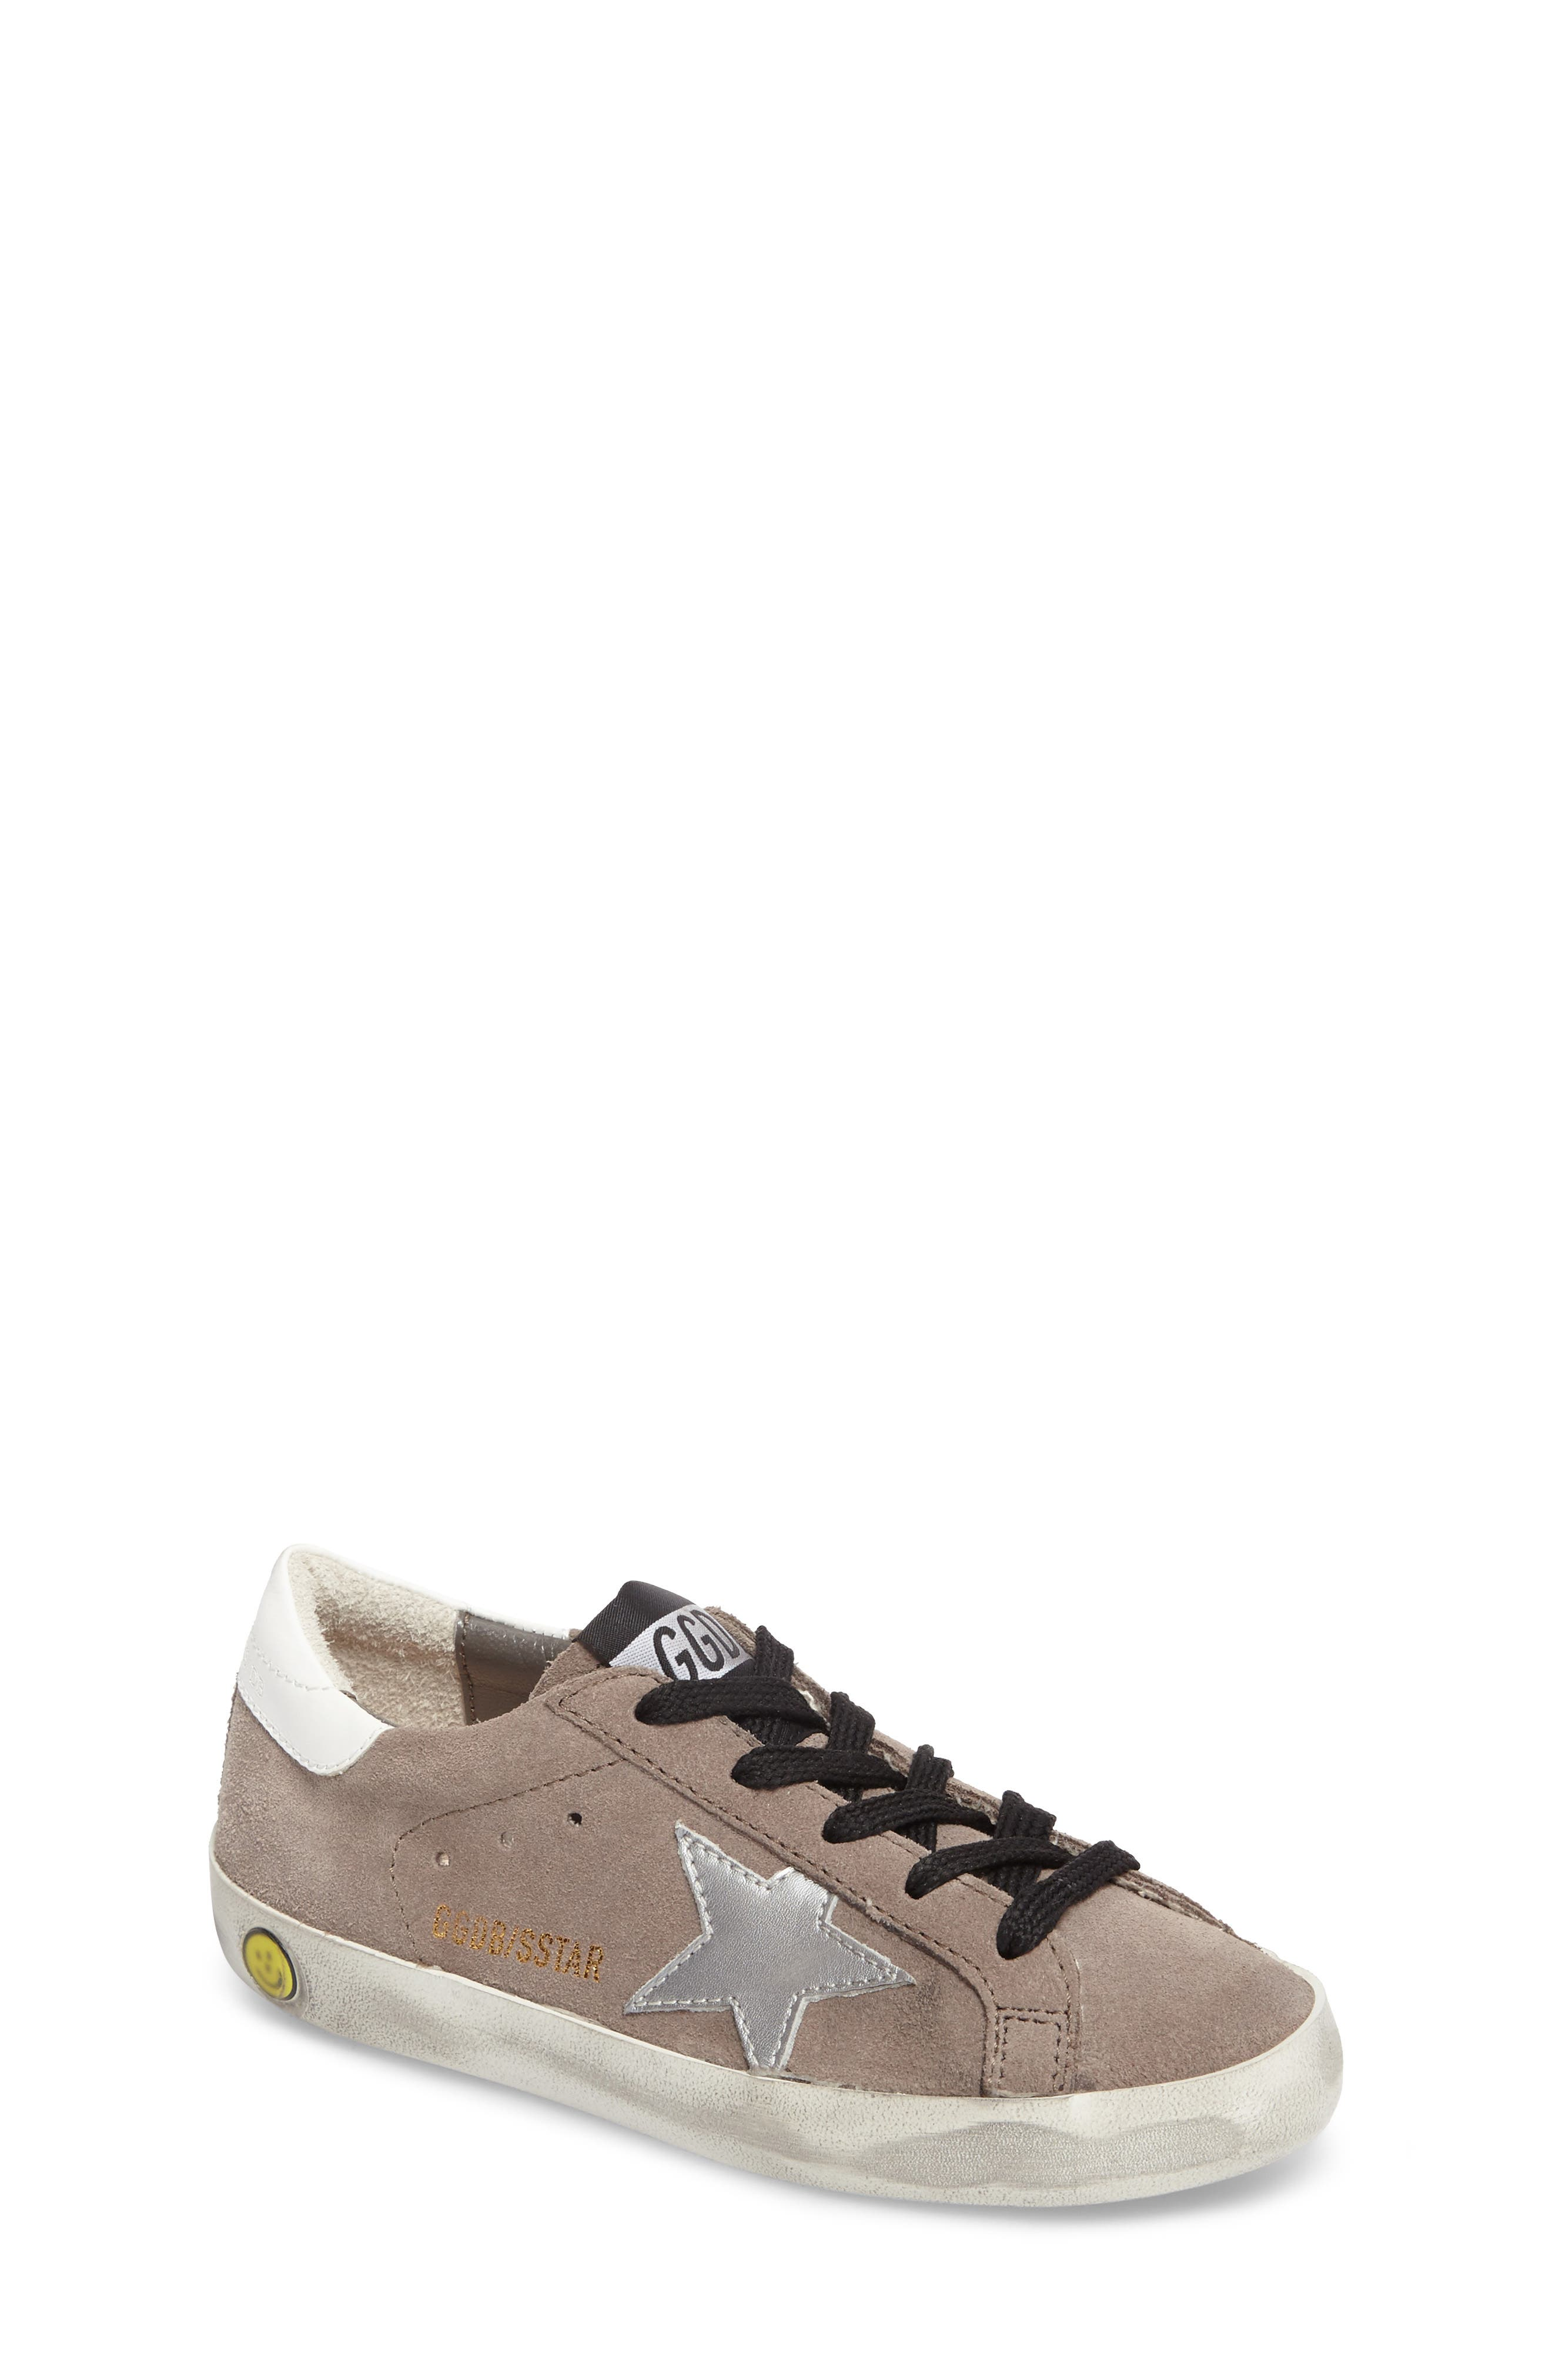 Golden Goose Superstar Low Top Sneaker (Baby, Walker, Toddler, Little Kid & Big Kid)